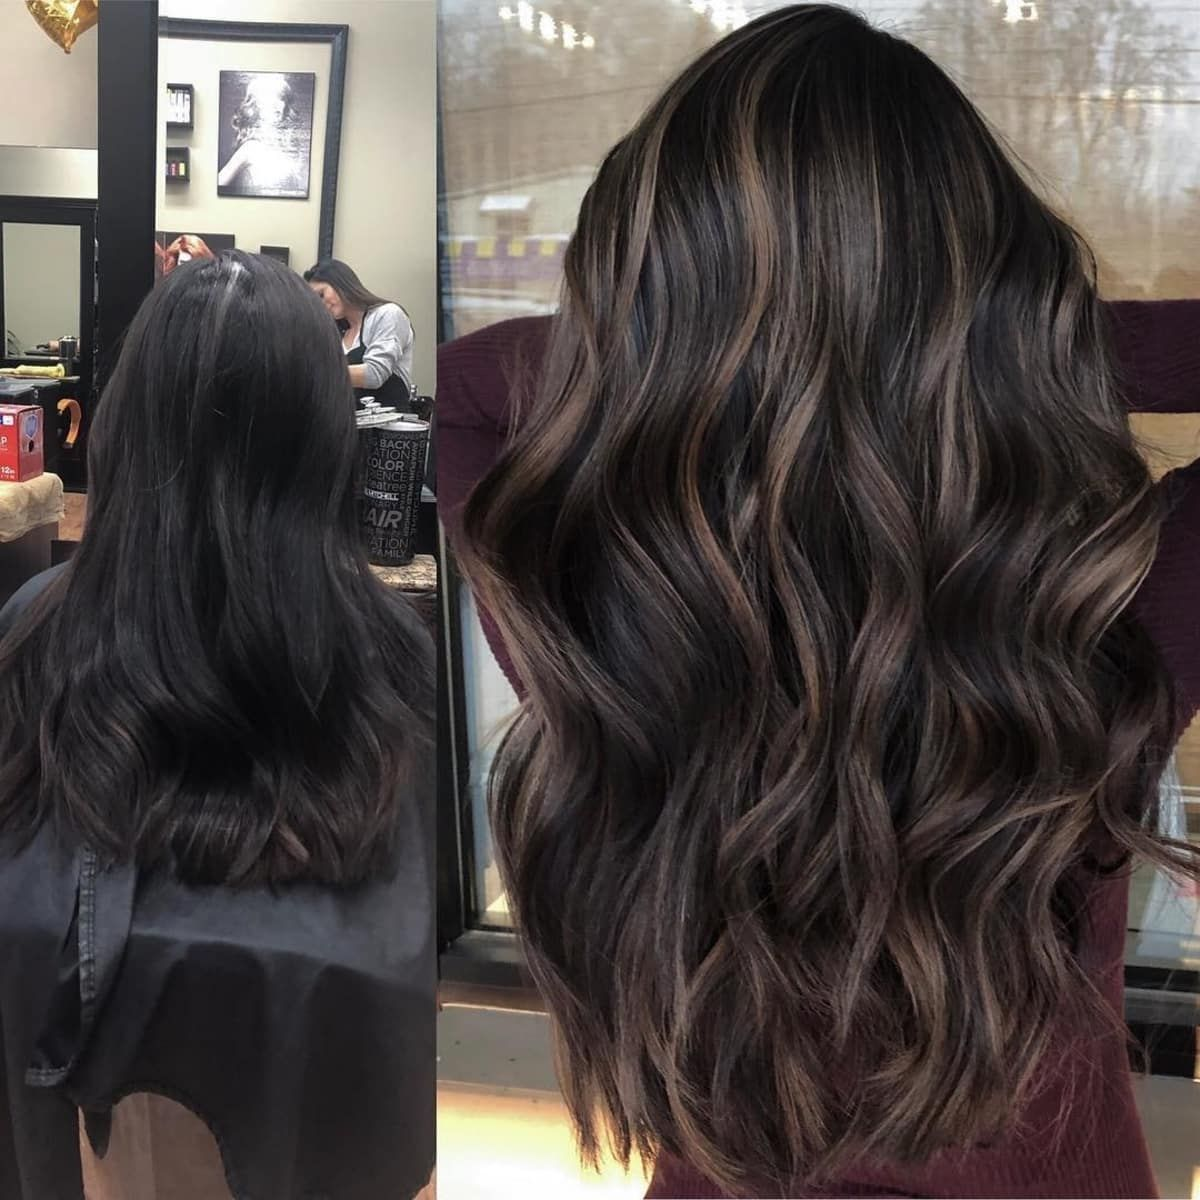 Red and Black Hair: Ombre, Balayage & Highlights